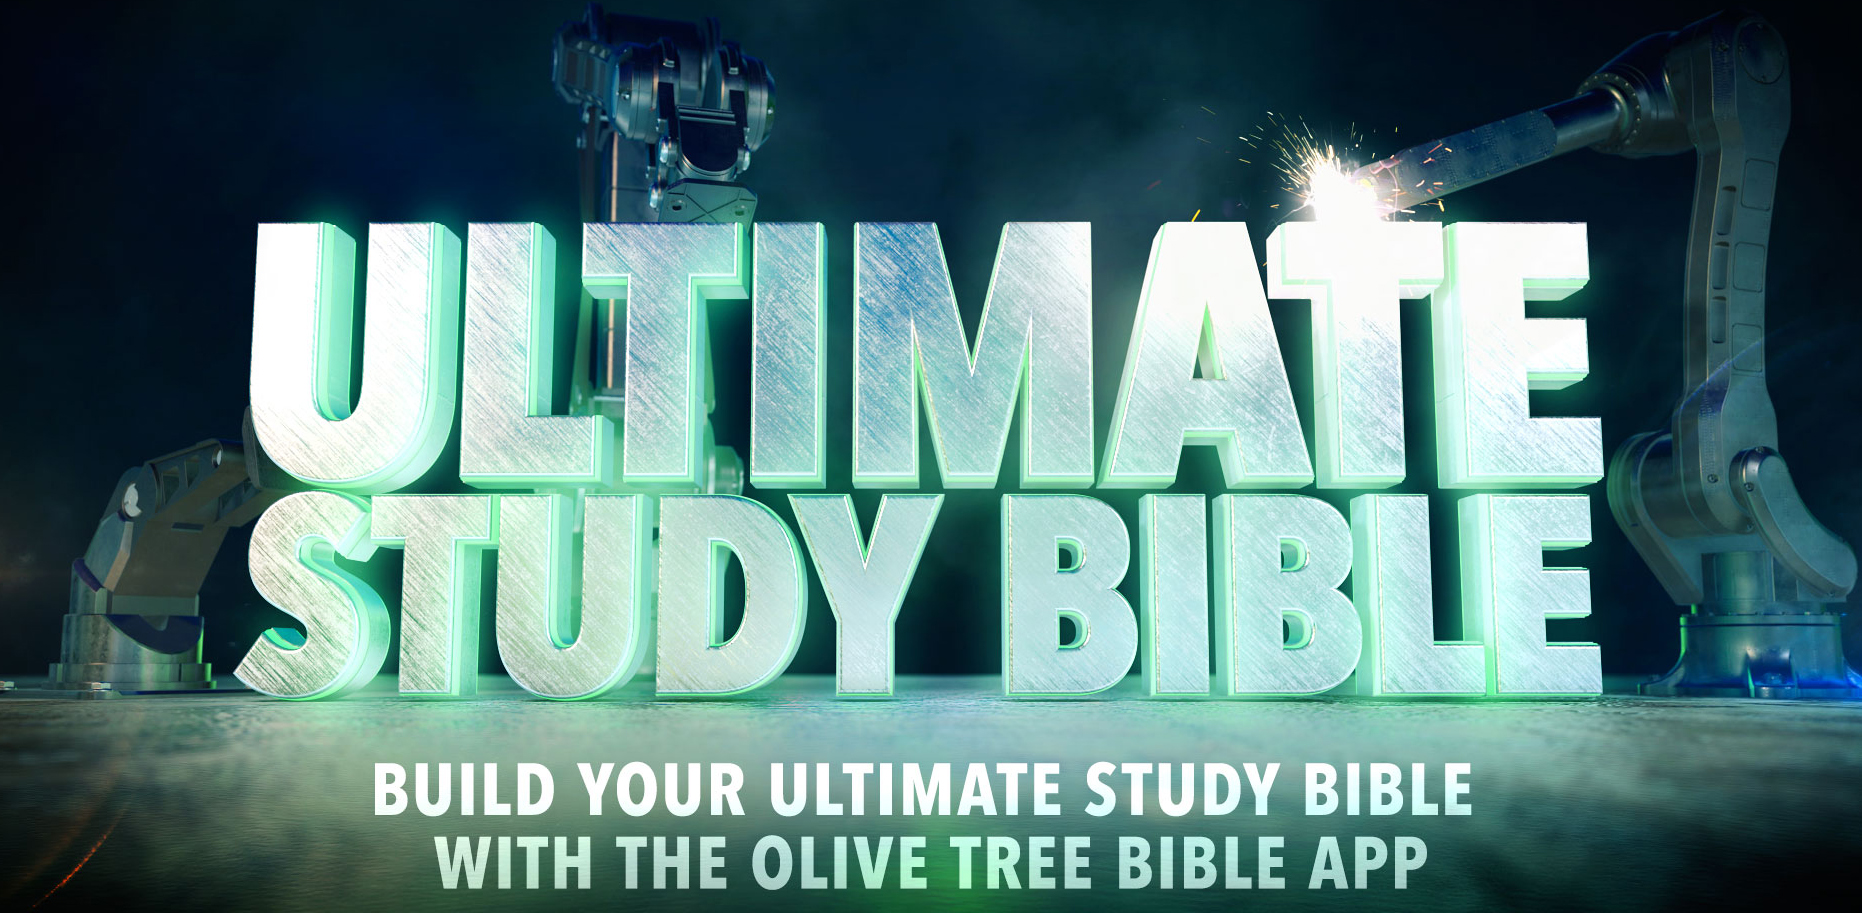 How to use olive tree bible study app : Best buy return